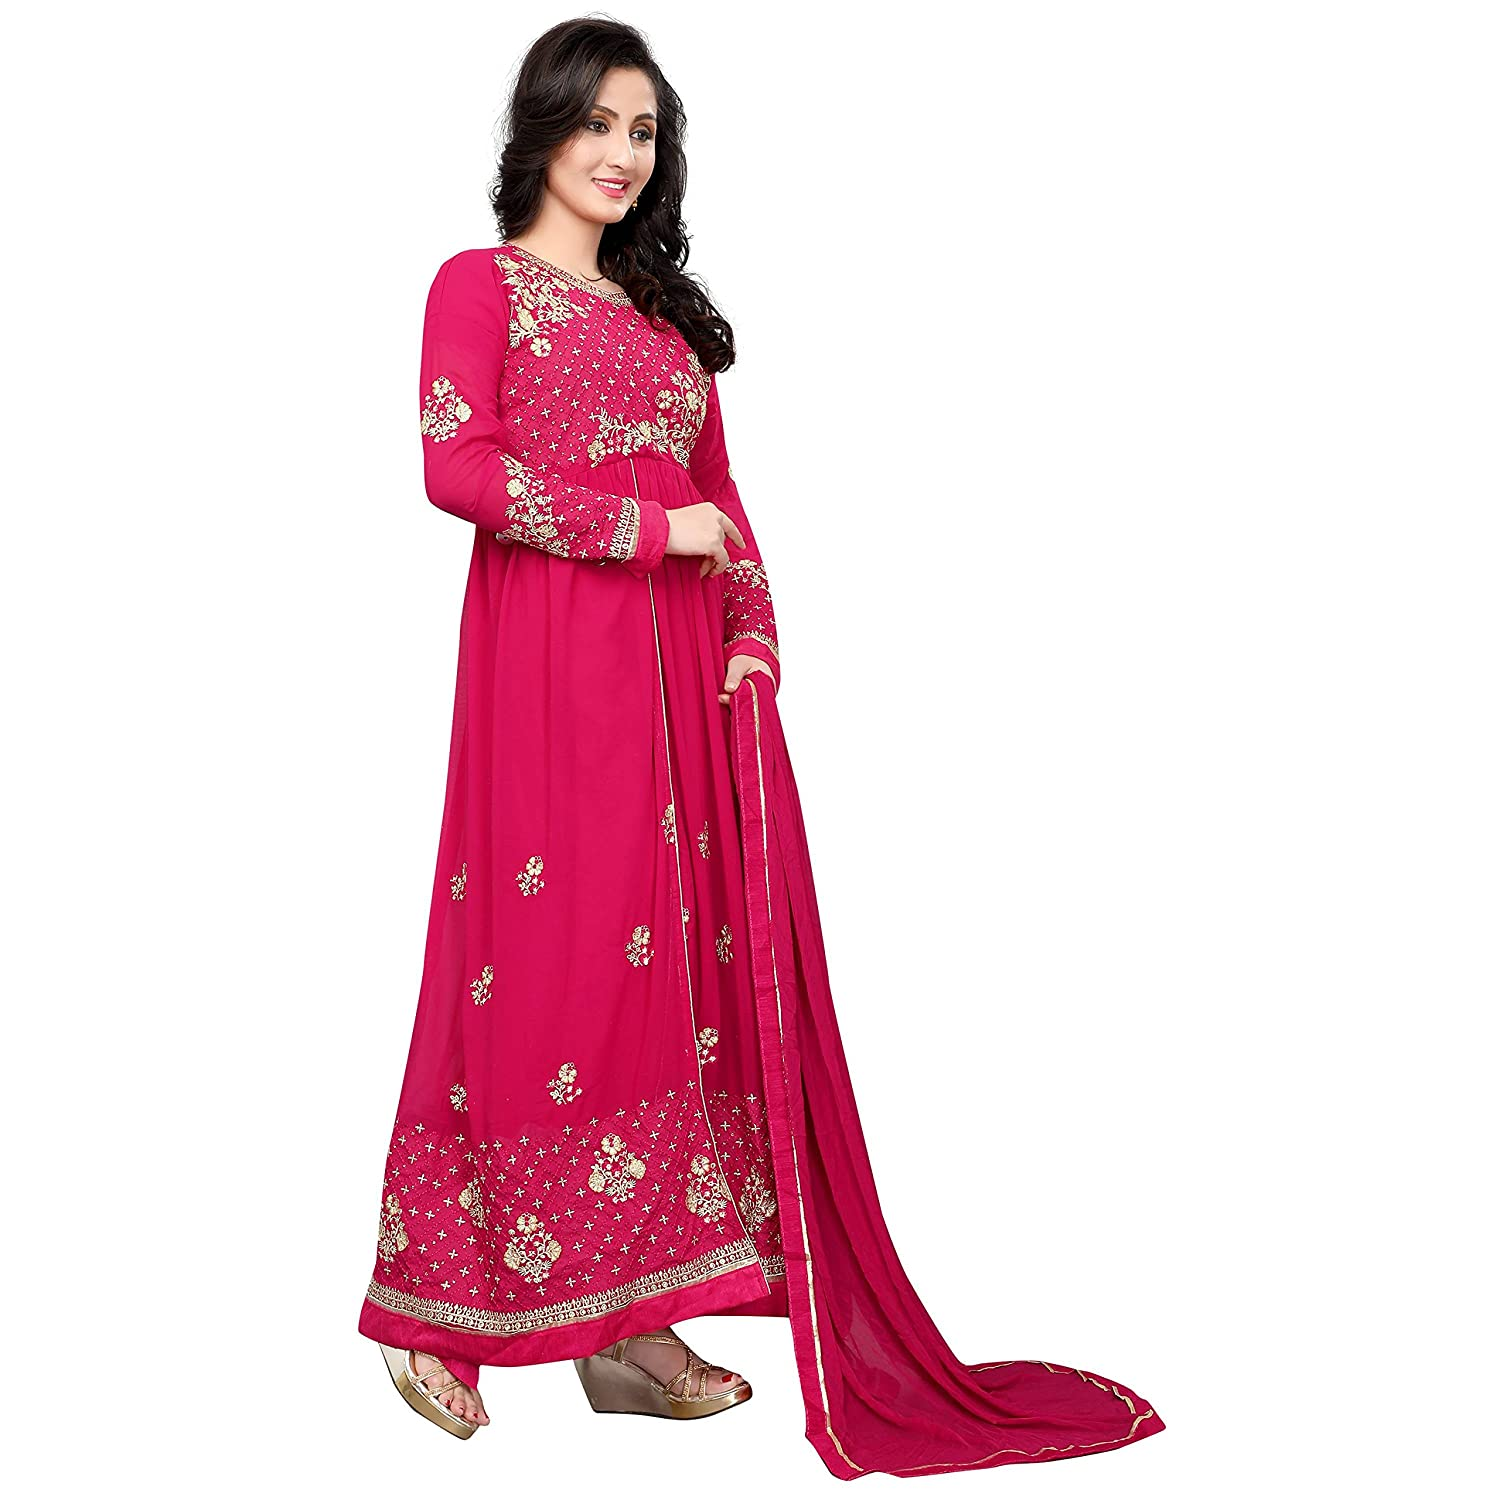 d1eecd1730 Aryan Fashion Women s Semi-Stitched Georgette Anarkali Salwar Suit Set  (Aryan Er10477 Pink Free Size)  Amazon.in  Clothing   Accessories